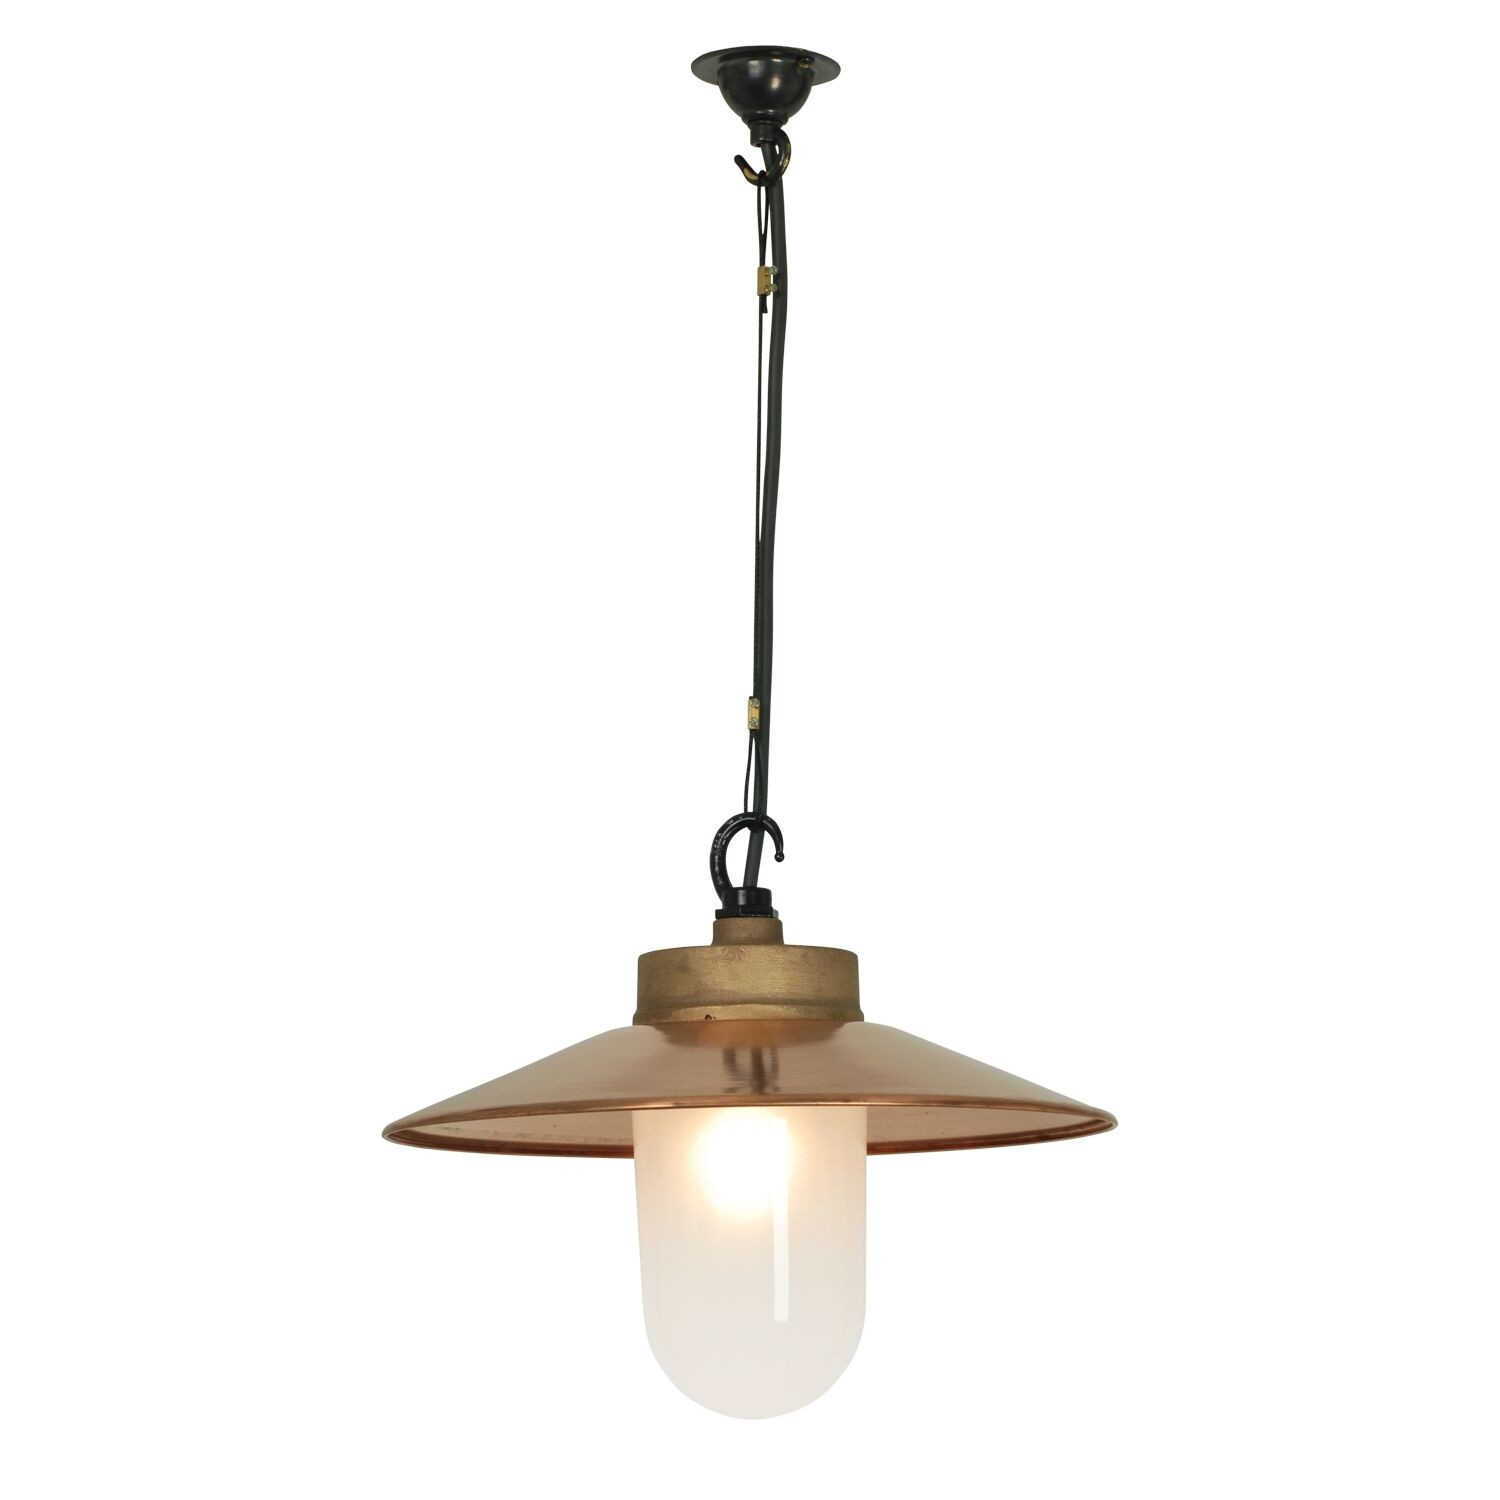 Well Glass Pendant Light with Visor 7680 Gunmetal, Frosted glass, IP20